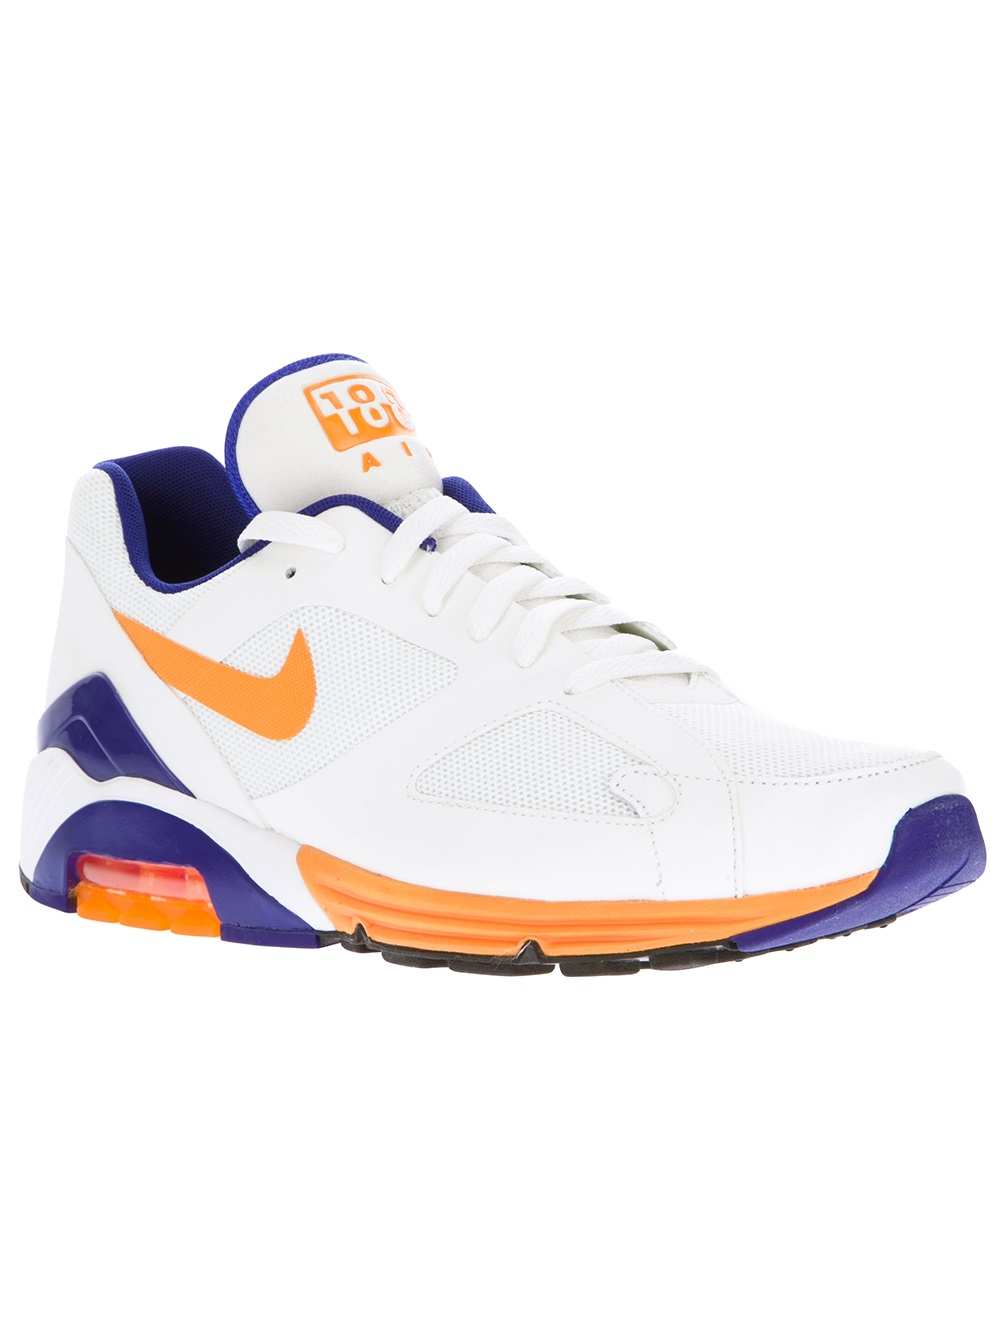 best service 2f8ab 87f20 Lyst - Nike Air Max Terra 180 Qs Trainer in White for Men